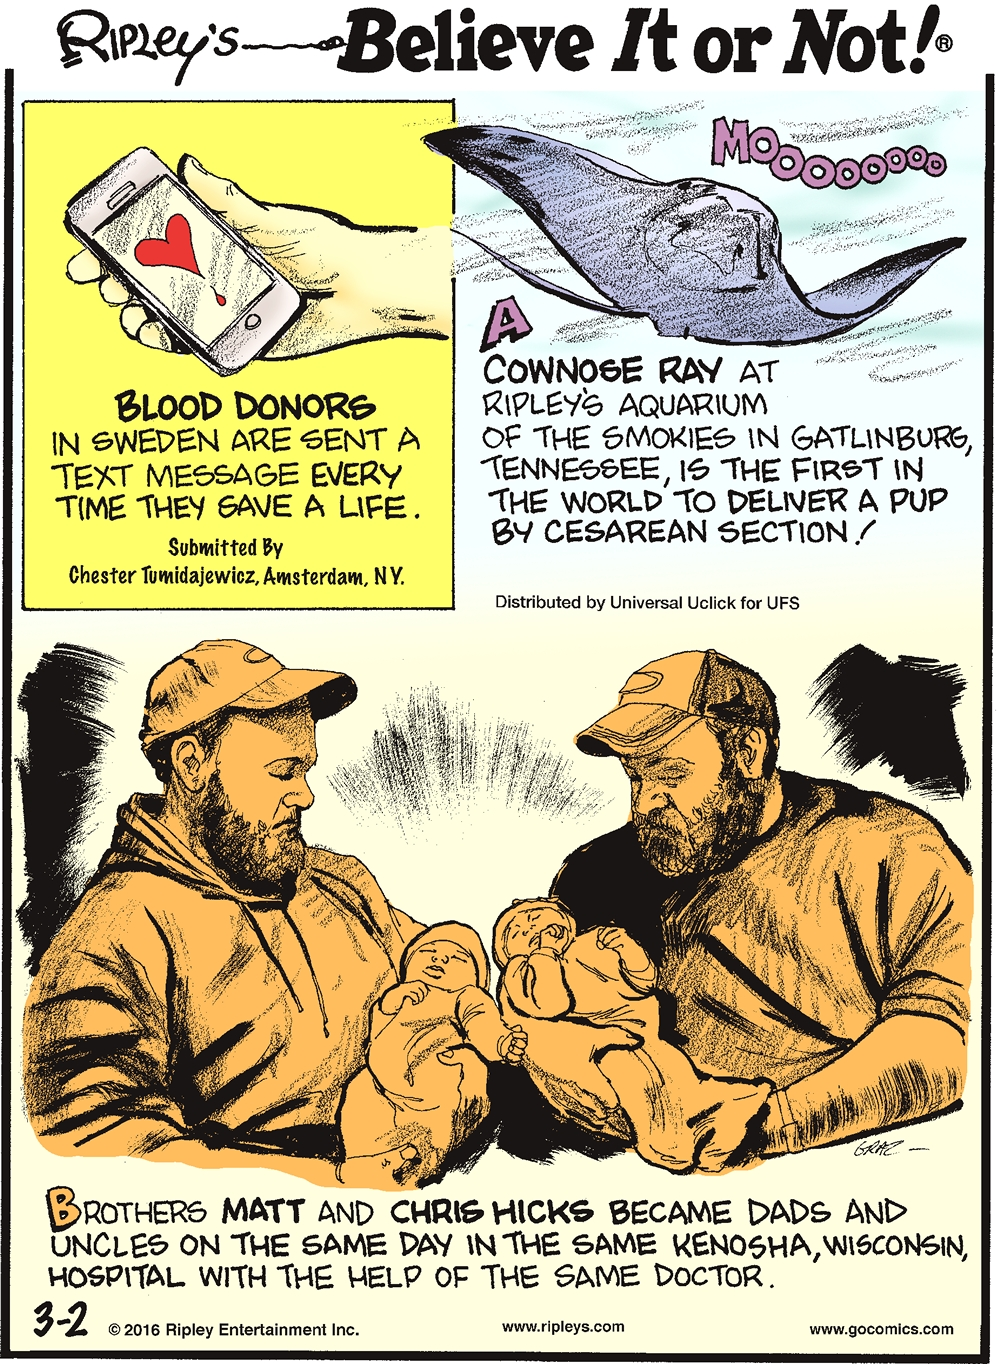 Blood donors in Sweden sent a text message every time they gave a life. Submitted by Chester Tumidajewicz, Amsterdam, NY. -------------------- A cownose ray at Ripley's Aquarium of the Smokies in Gatlinburg, Tennessee, is the first in the world to deliver a pup by cesarean section! -------------------- Brothers Matt and Chris Hicks became dads and uncles on the same day in the same Kenosha, Wisconsin, hospital with the help of the same doctor.